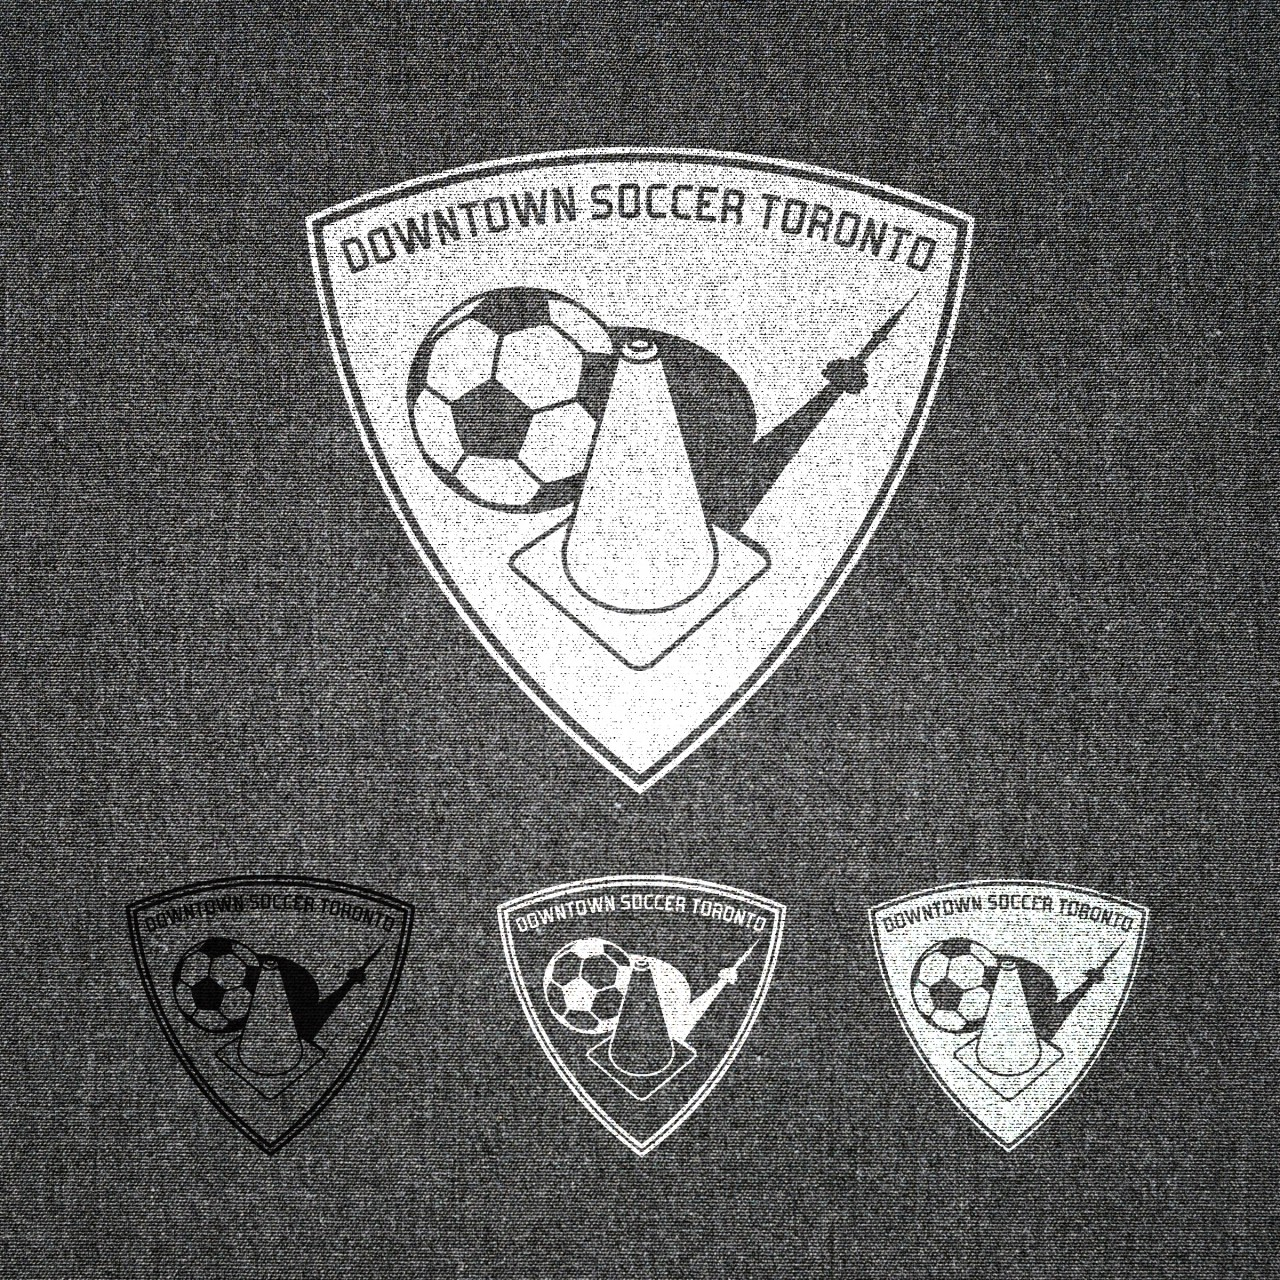 Image of Downtown Soccer Toronto logo inverted application